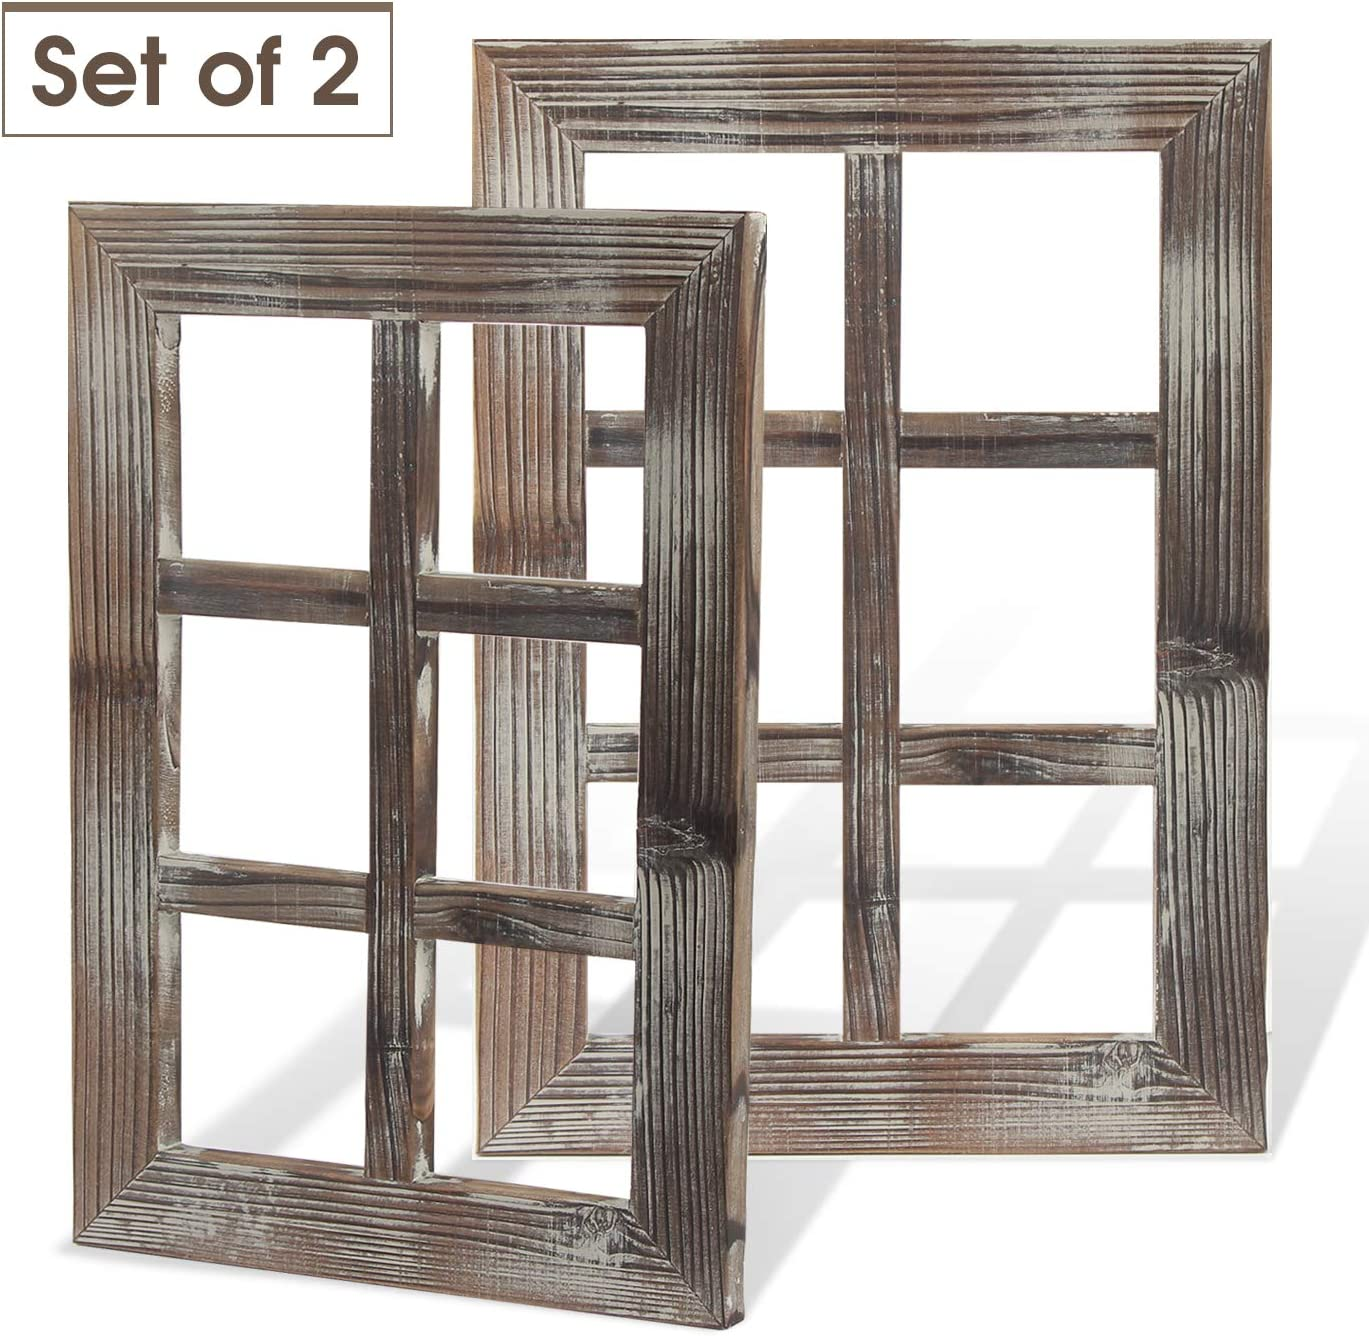 J JACKCUBE DESIGN Rustic Wood Window Frame Set of 2 Farmhouse Wall Decor Window Picture Frames for Living Room Bedroom Kitchen Home Decorations - MK579A